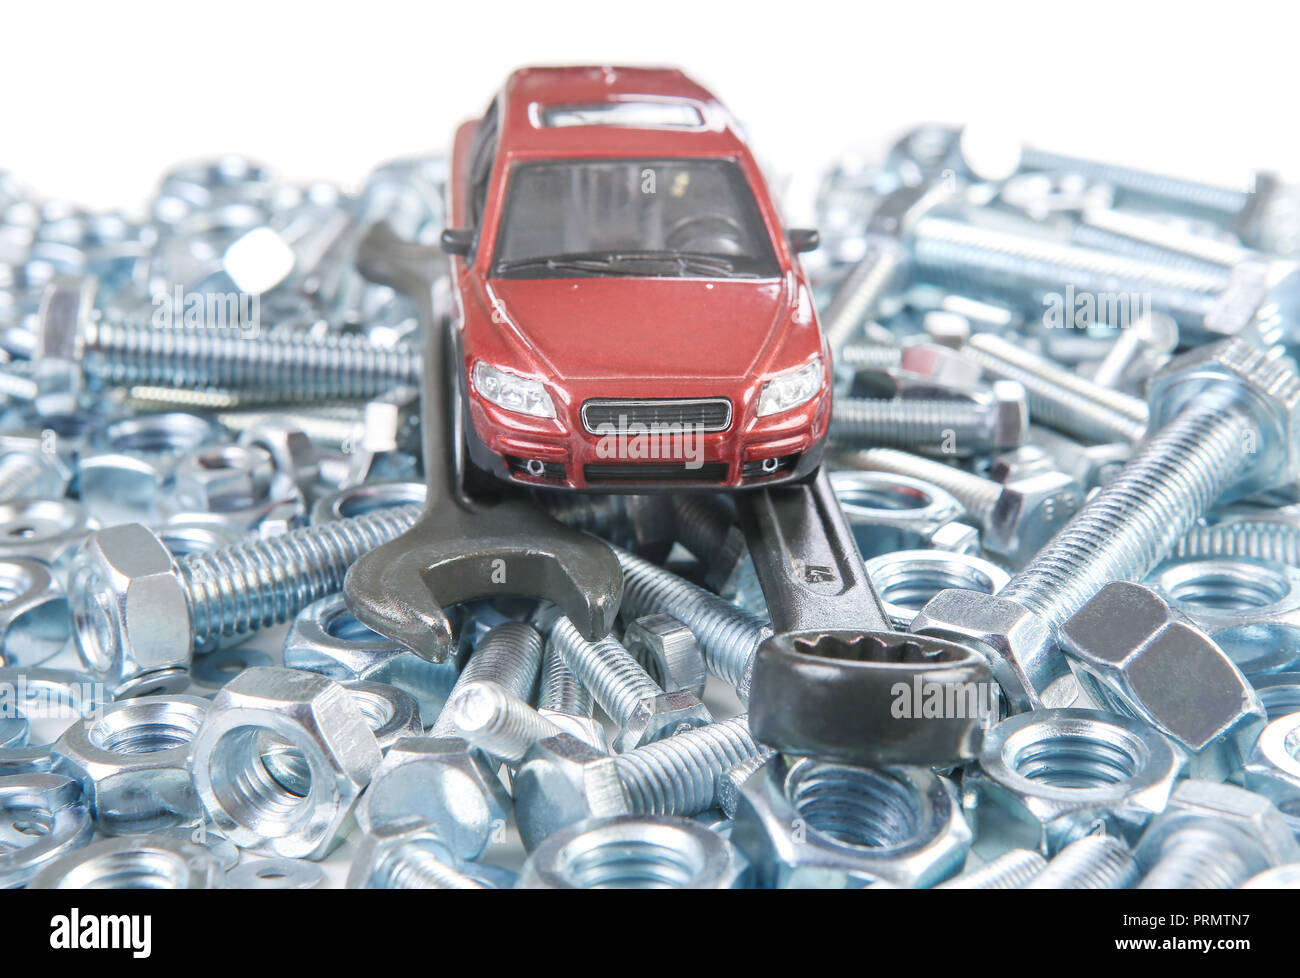 Red Toy Car On Wrenches Bolts And Nuts Stock Photo 221119955 Alamy